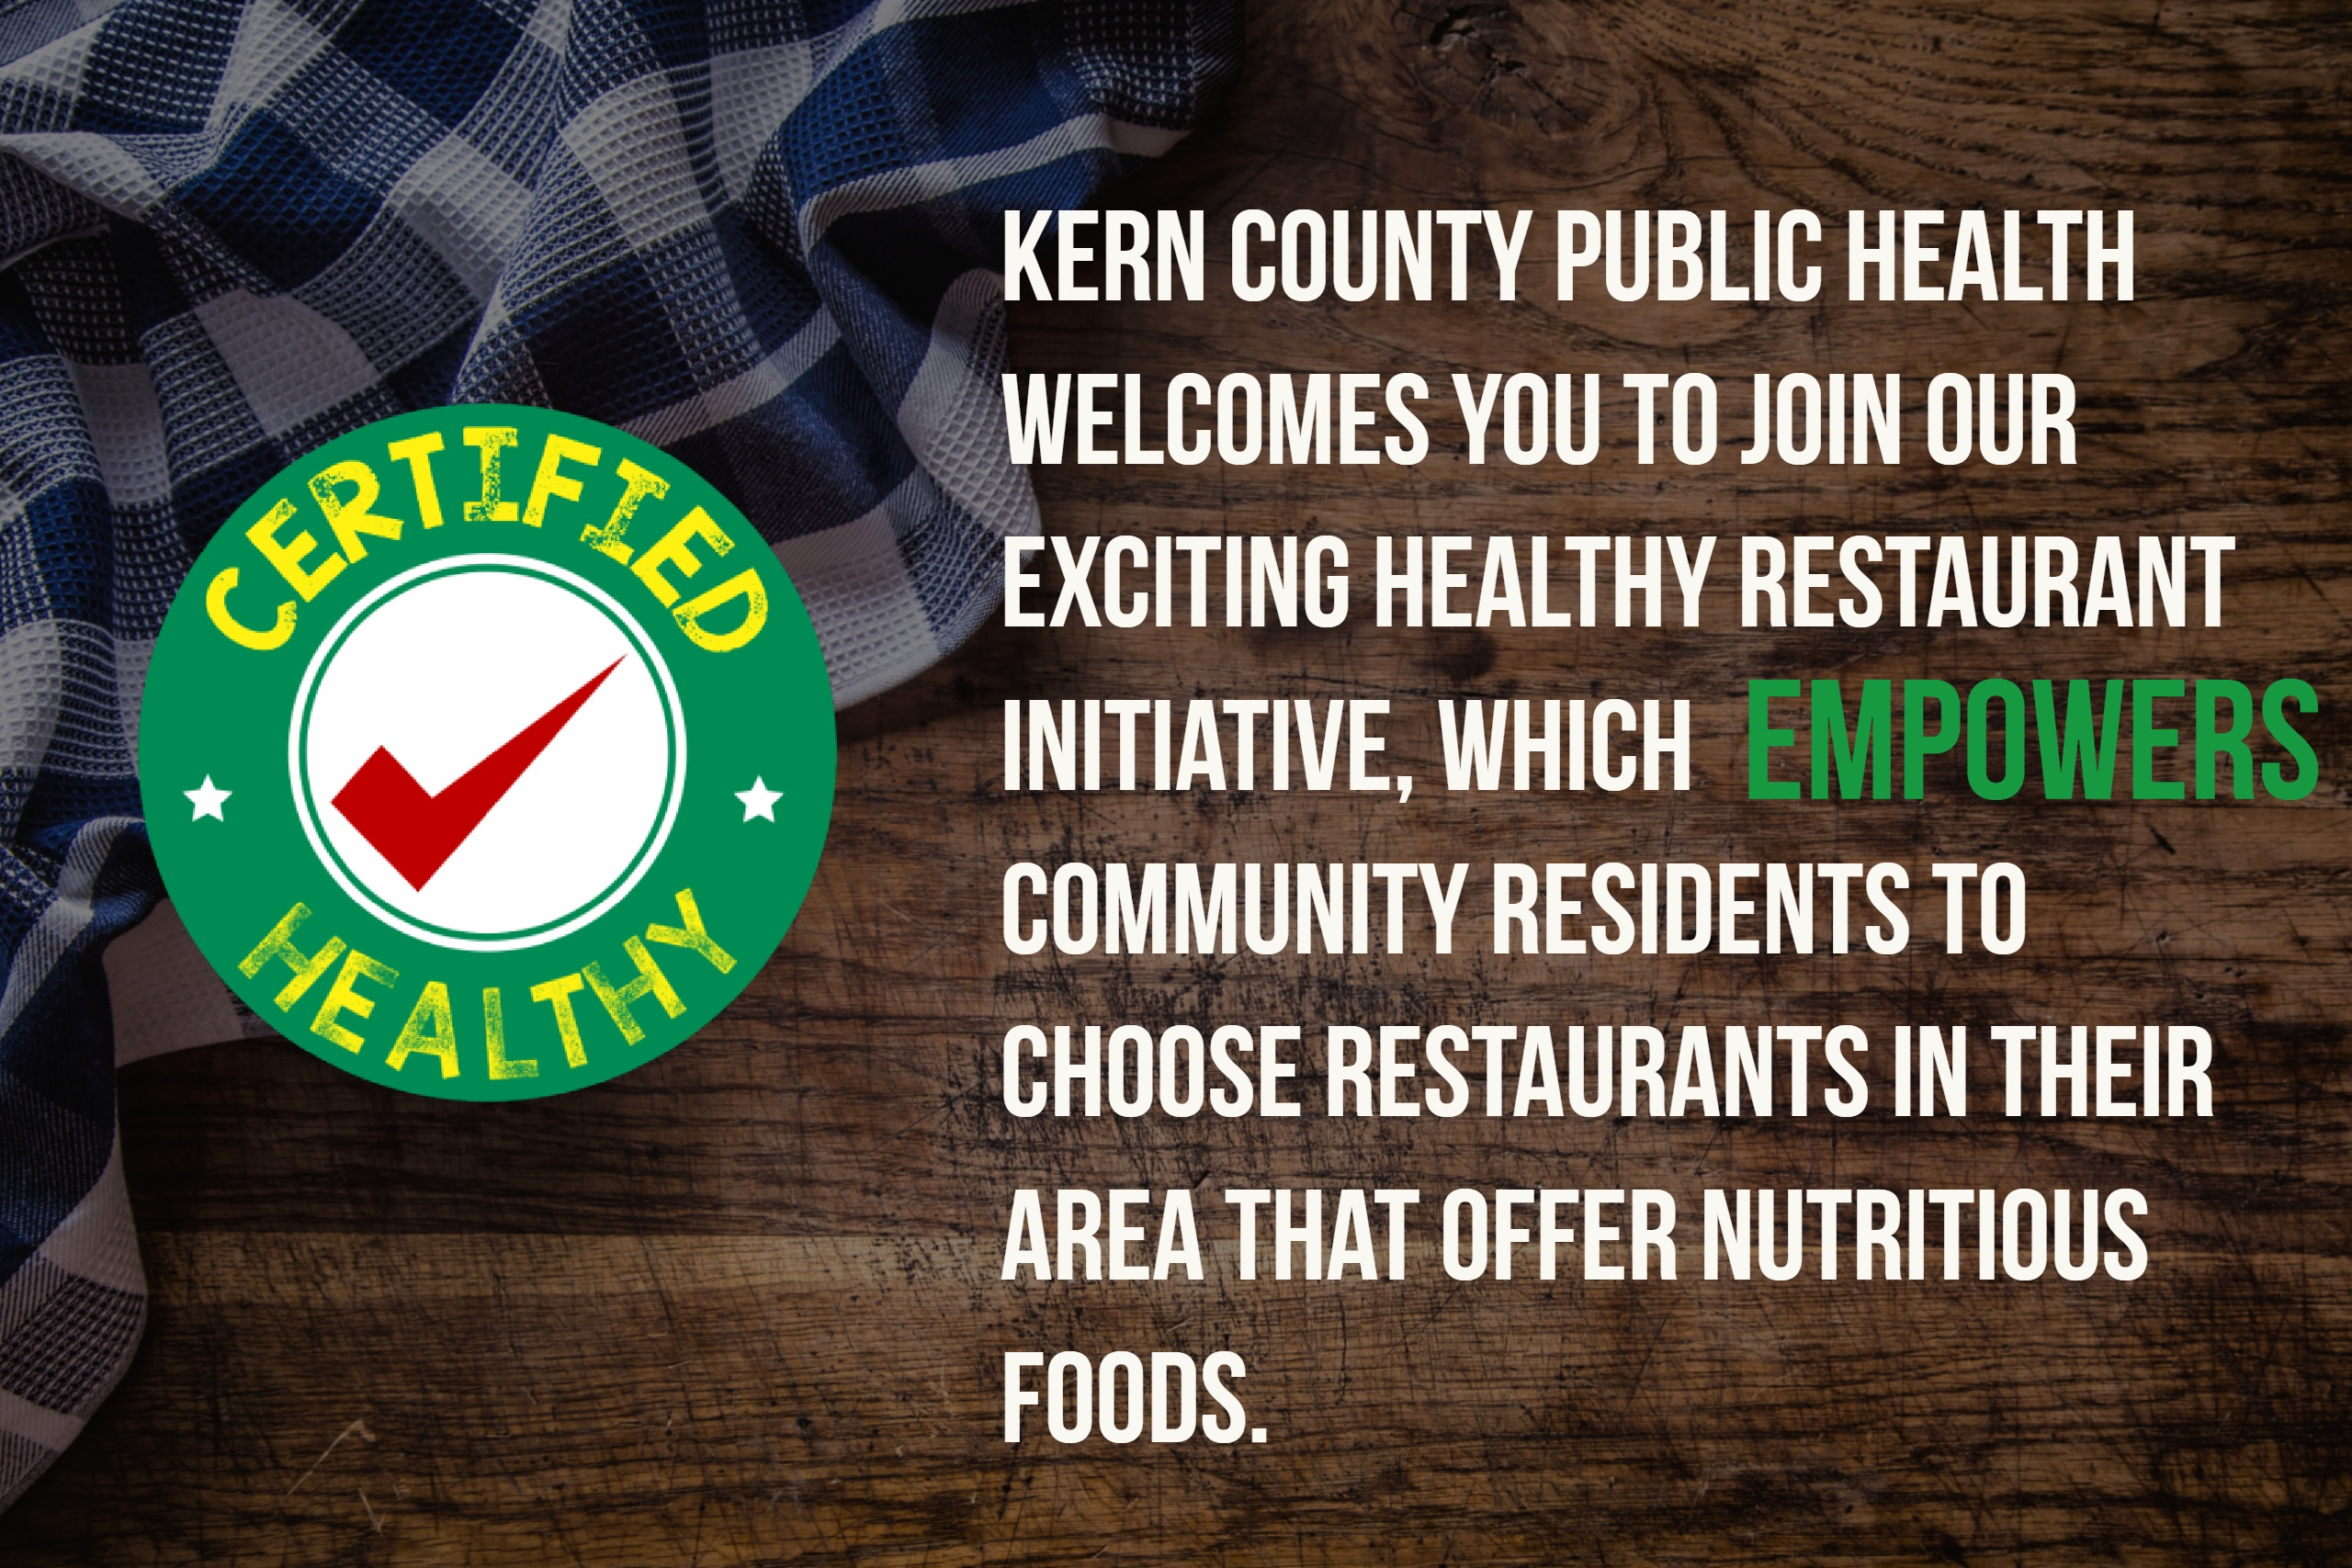 Certified Healthy Kern County Public Health Services